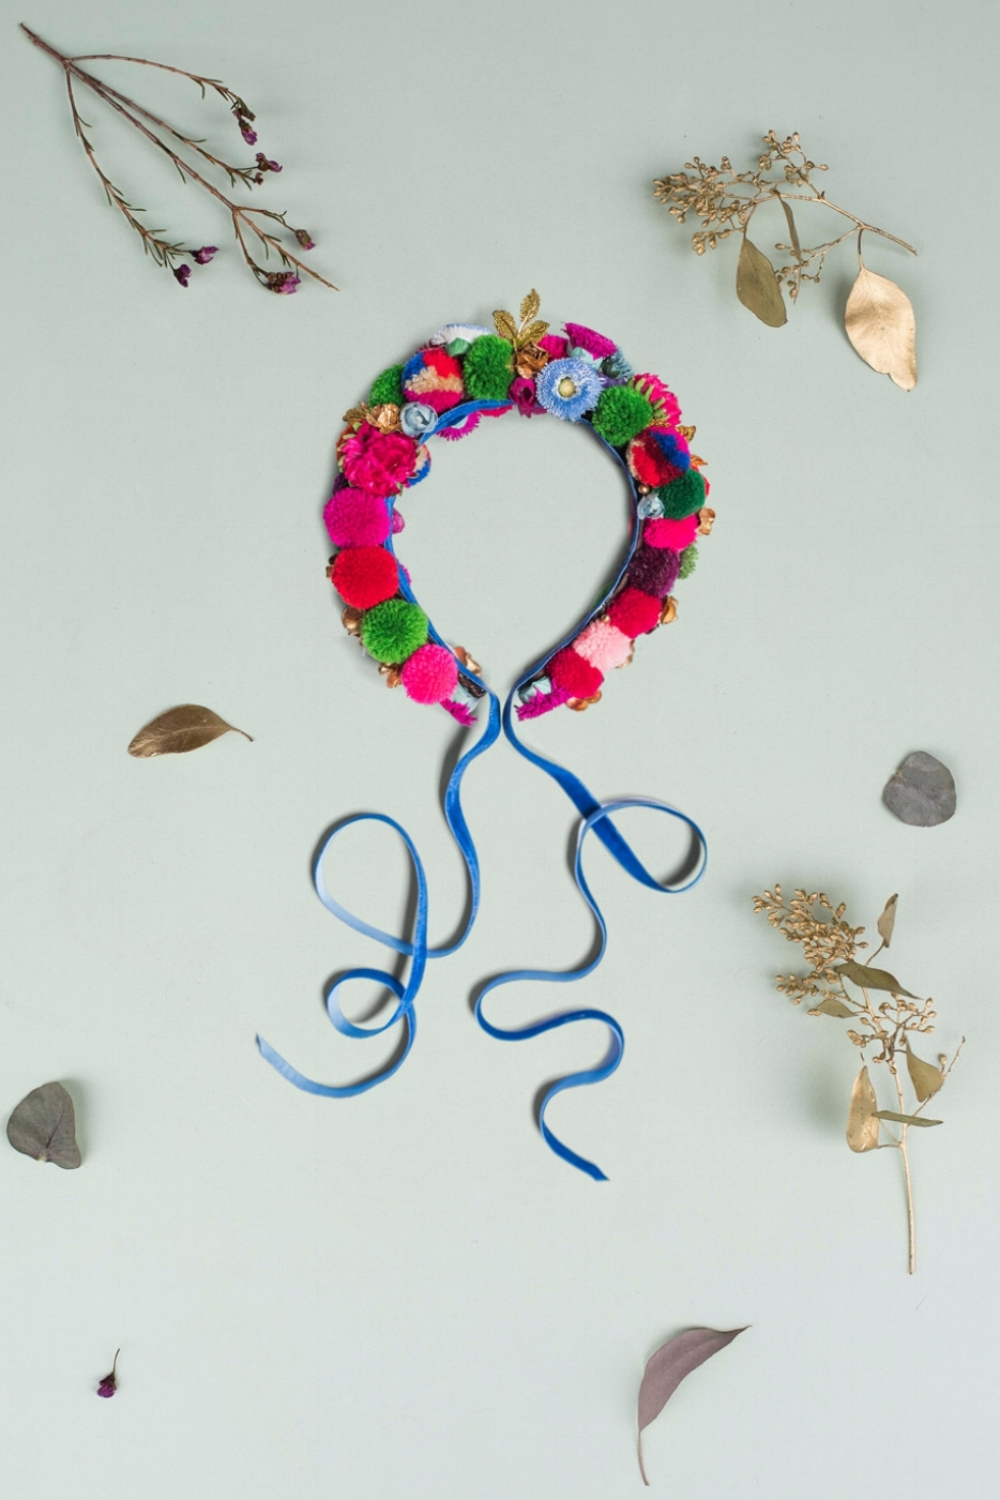 We-Are-Flowergirls_ConstantlyK_POMPOM-Crown-constantly-blue-€89.jpg